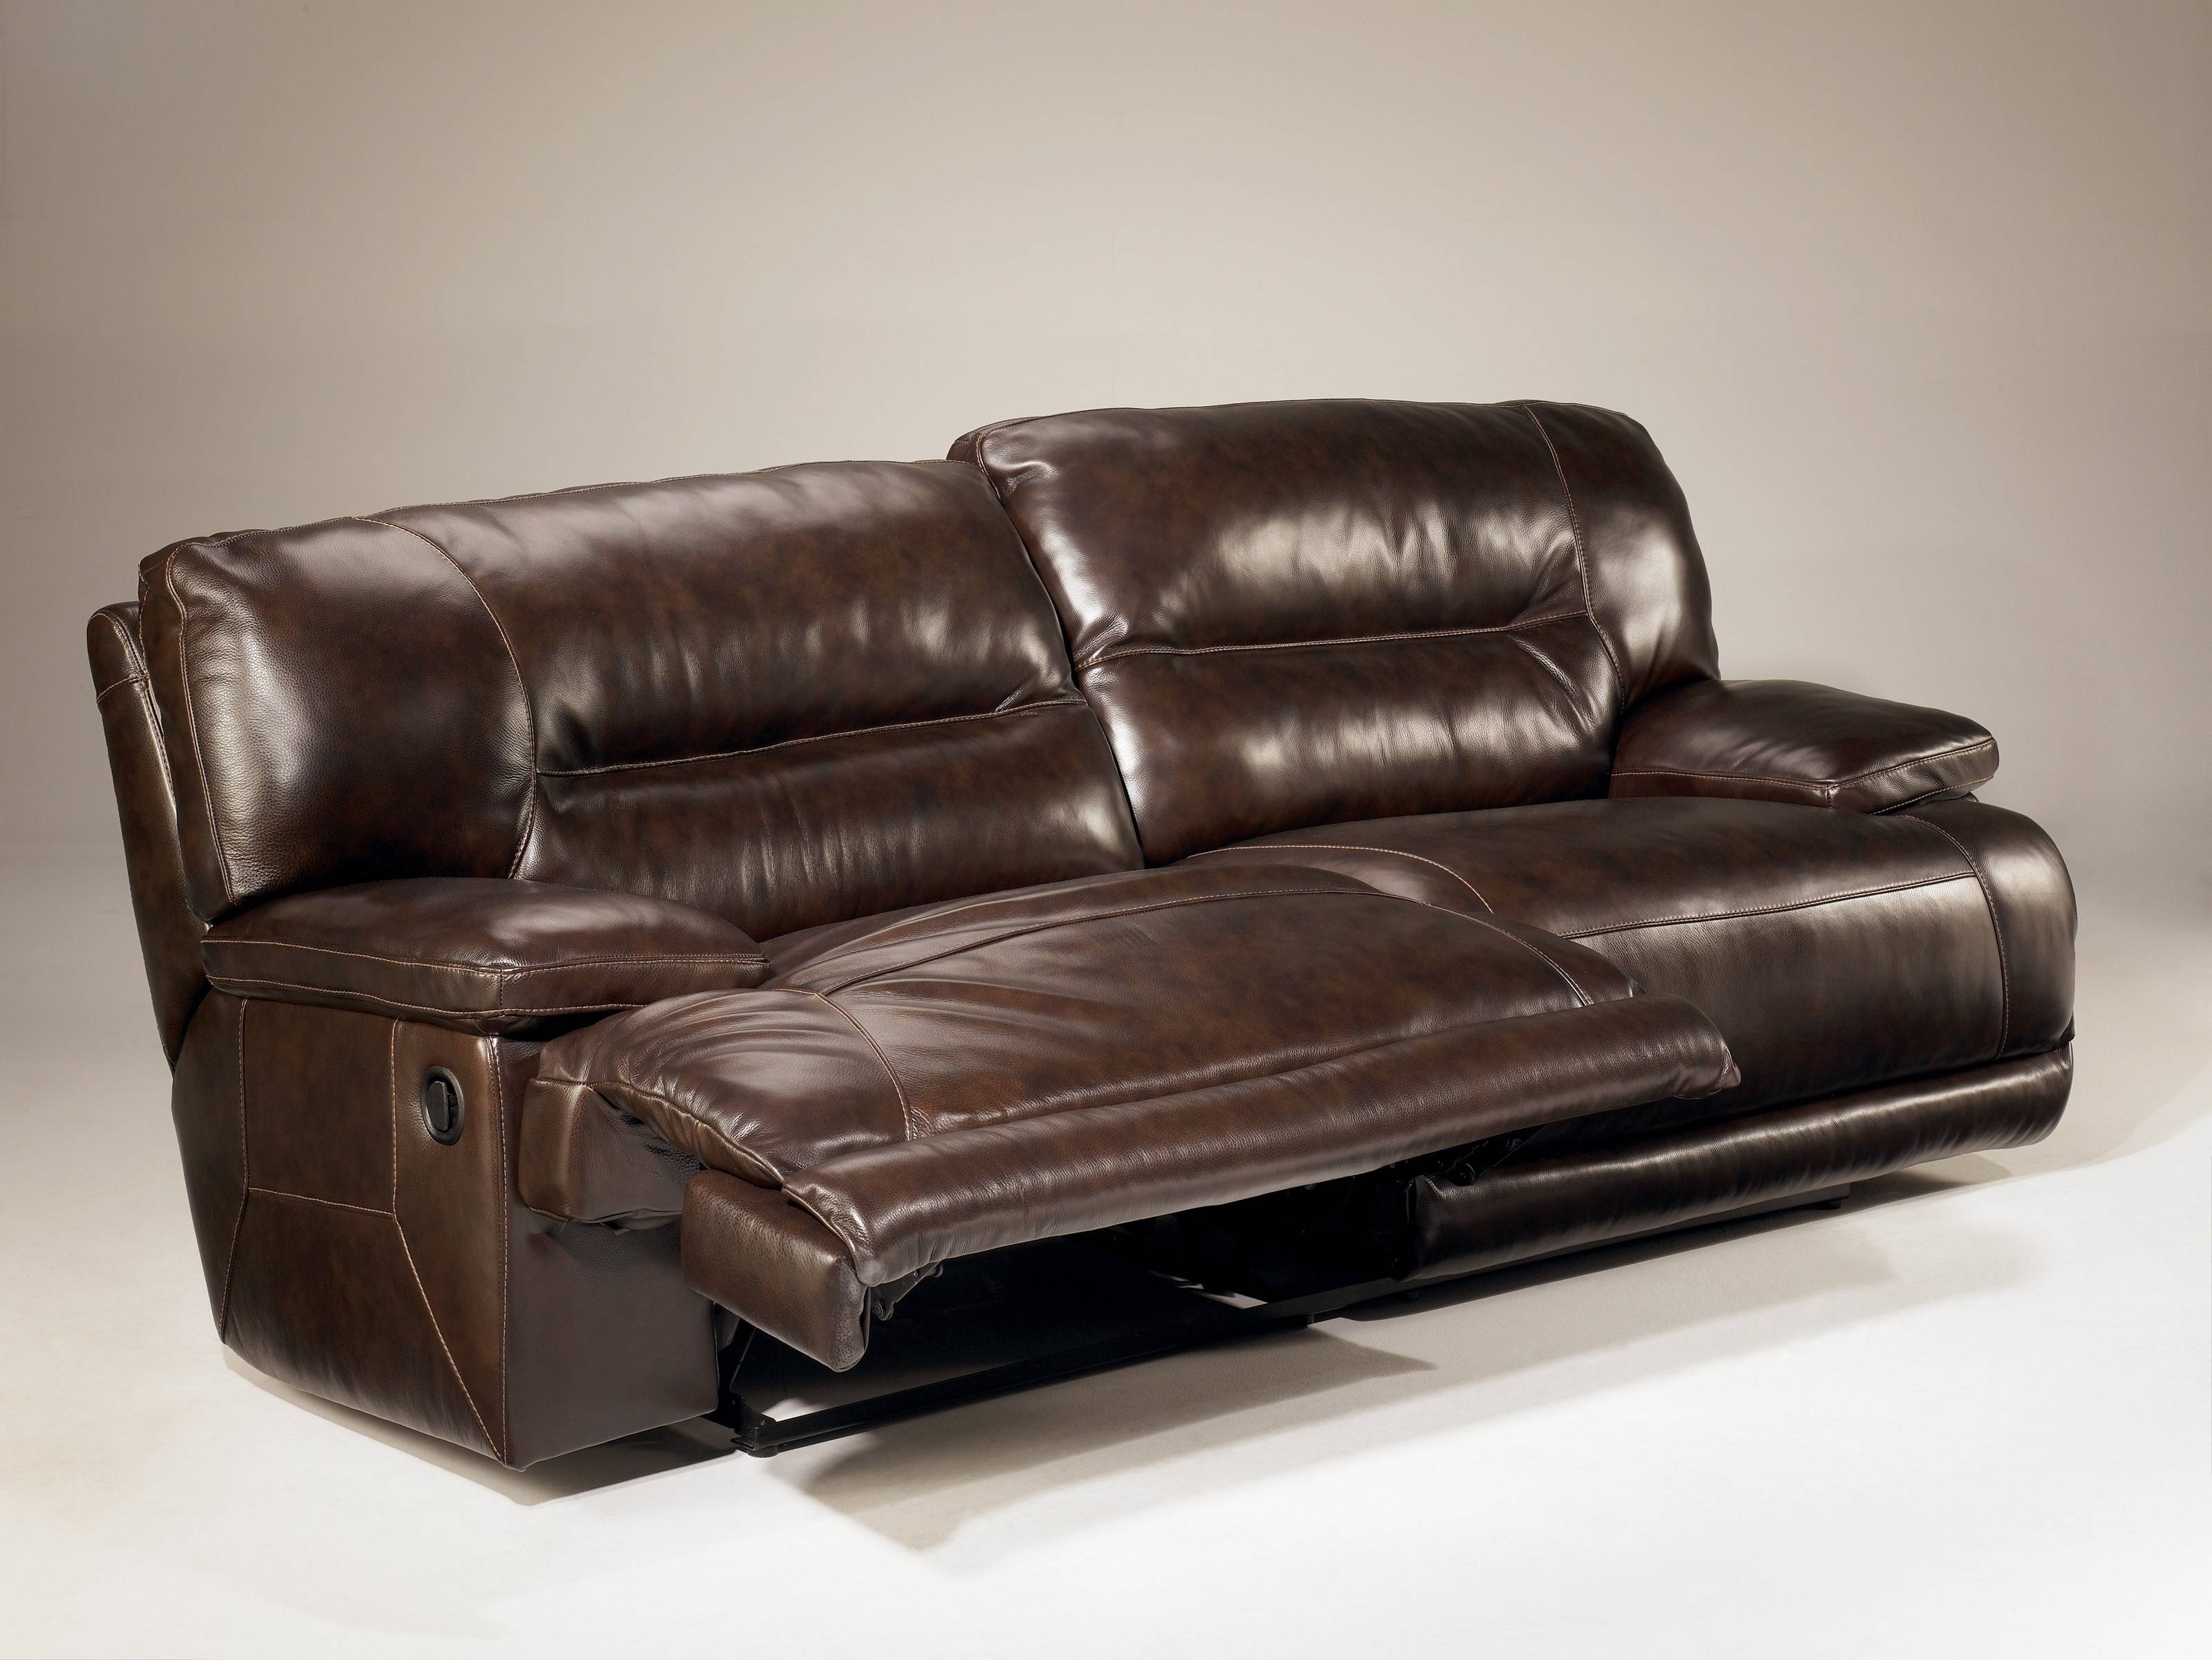 Exhilaration - Chocolate 42401 2 - Seat Power Reclining Sofa with regard to 2 Seat Recliner Sofas (Image 10 of 30)